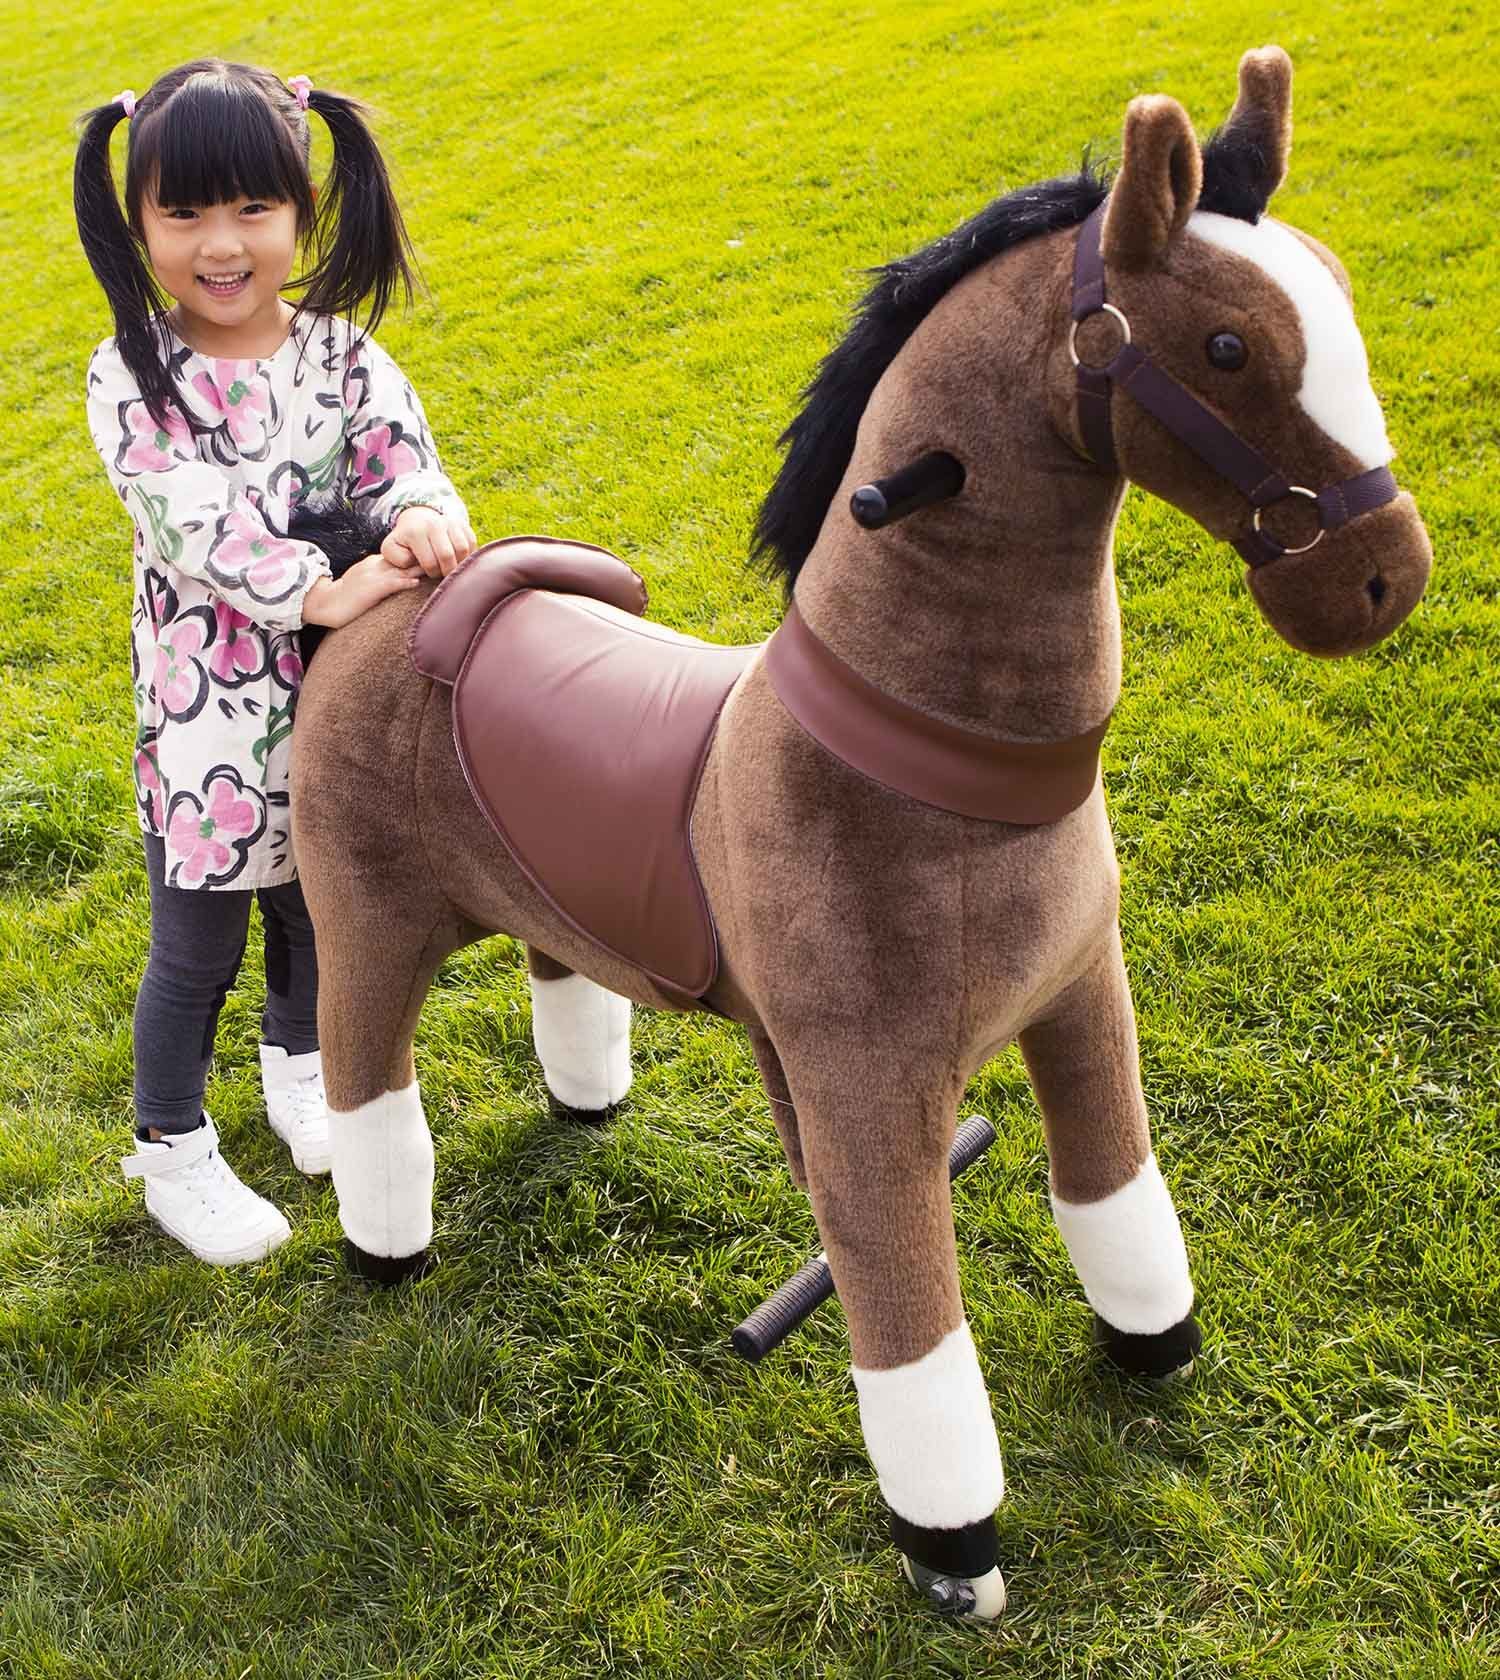 Mechanical Ride on Pony Simulated Horse Riding on Toy Ride-on without Battery or Power: More Comfortable Riding with Gallop Motion for Kids 5-12 Years